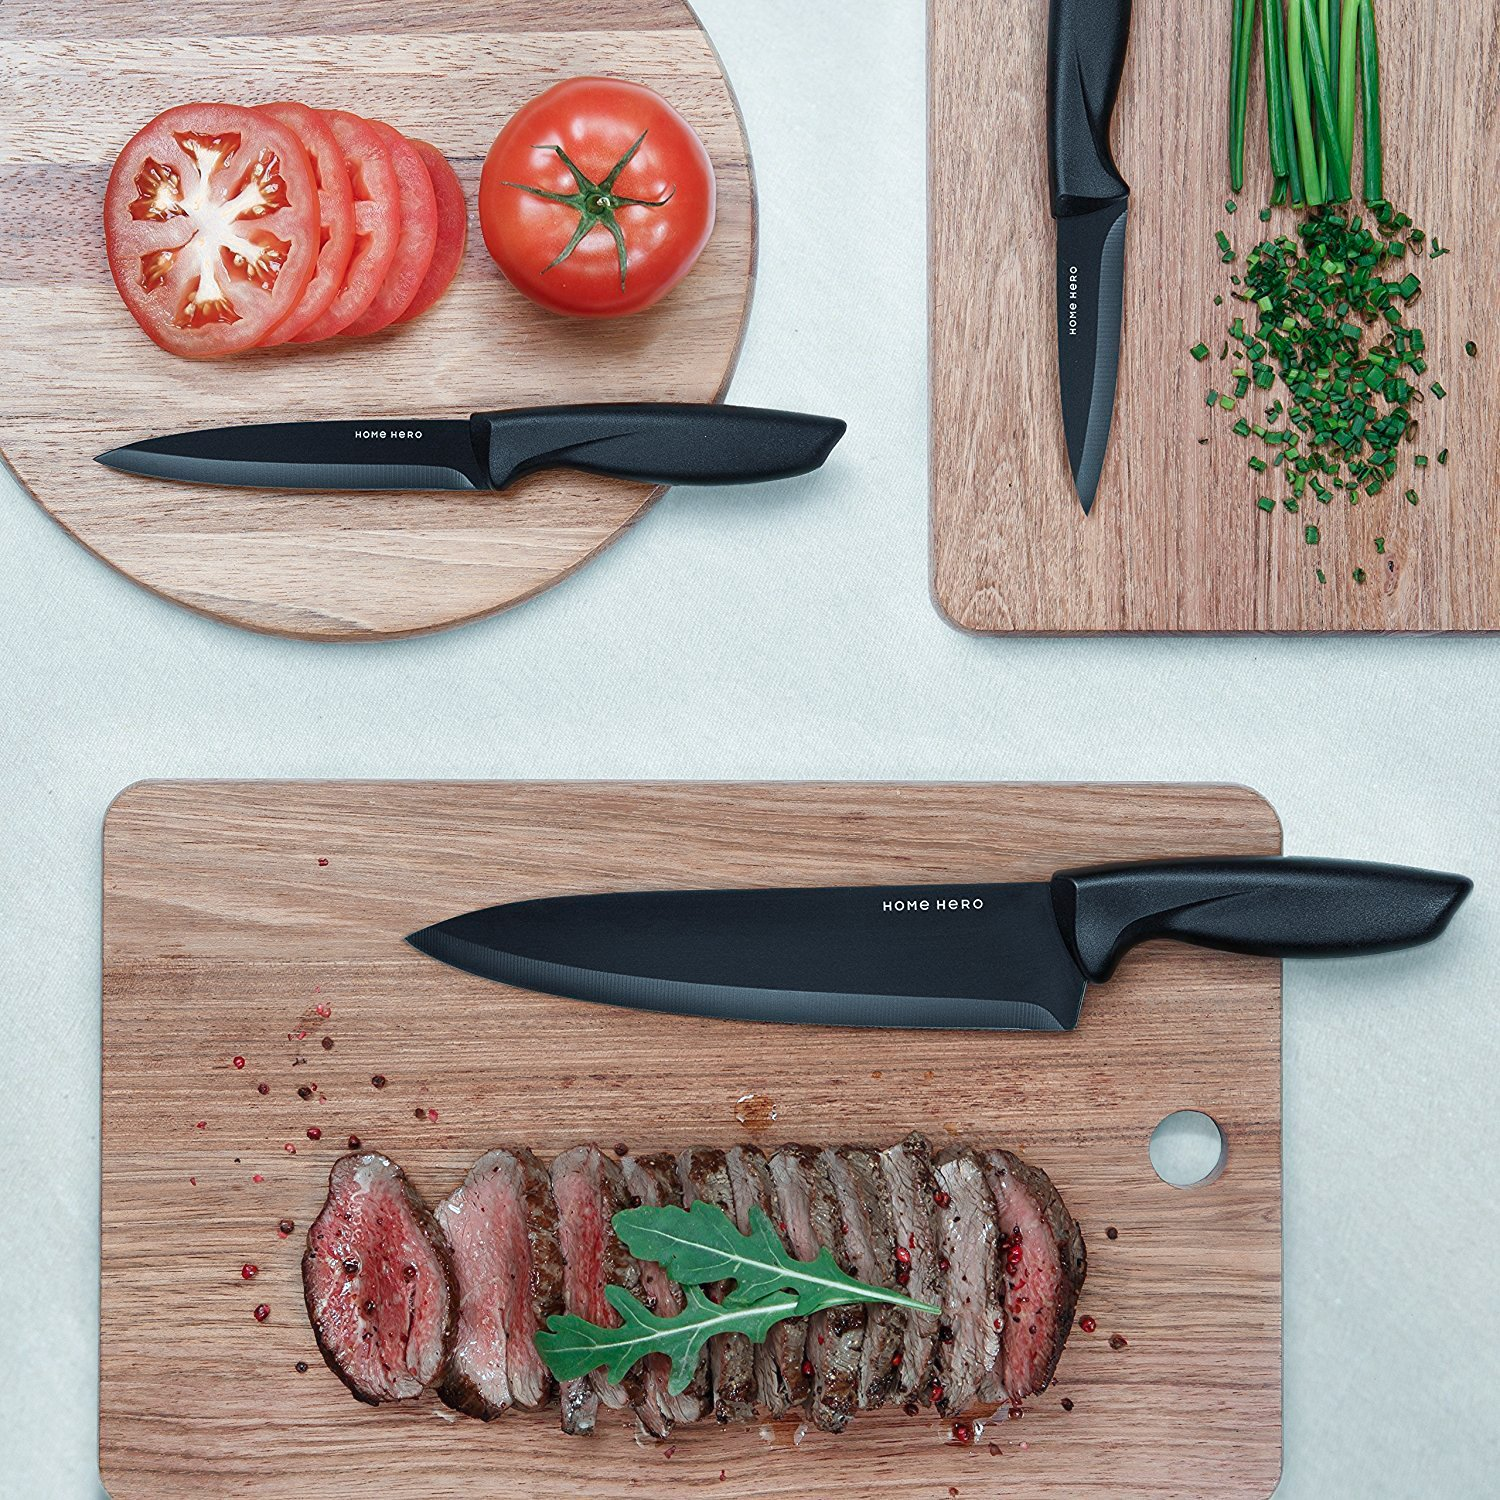 Chef Knife Set Knives Kitchen Set - Kitchen Knives Set Kitchen Knife Set with Stand - Plus Professional Knife Sharpener - 7 Piece Stainless Steel Cutlery Knives Set by HomeHero by HomeHero (Image #5)